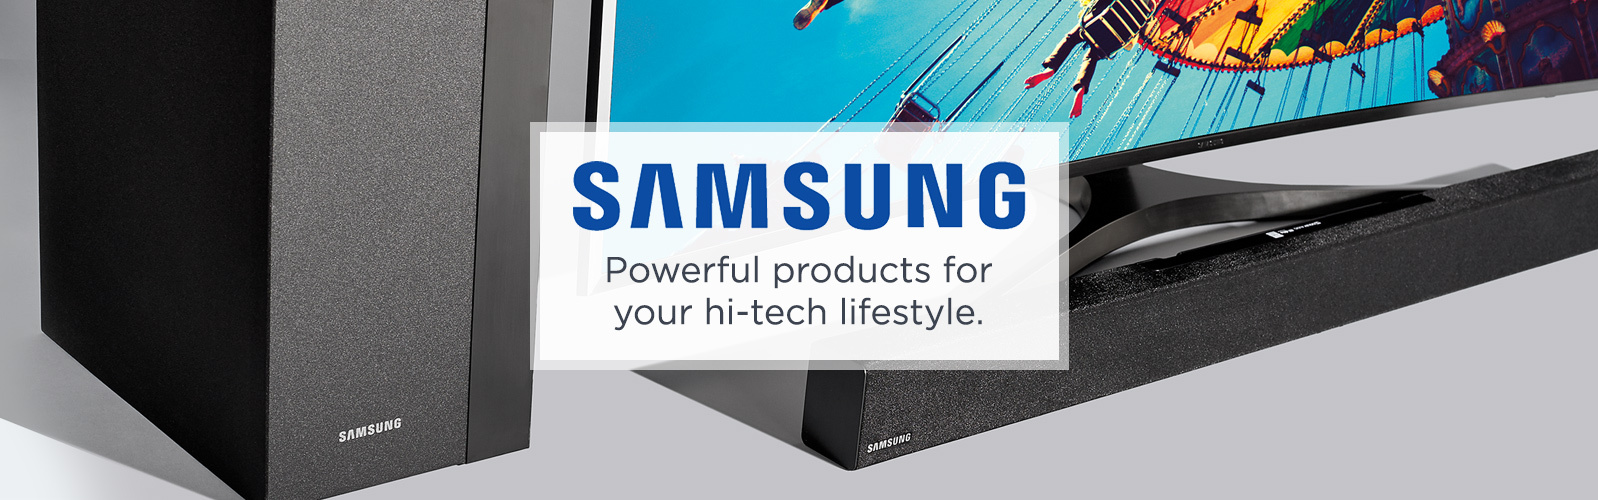 Samsung. Powerful products for your hi-tech lifestyle.